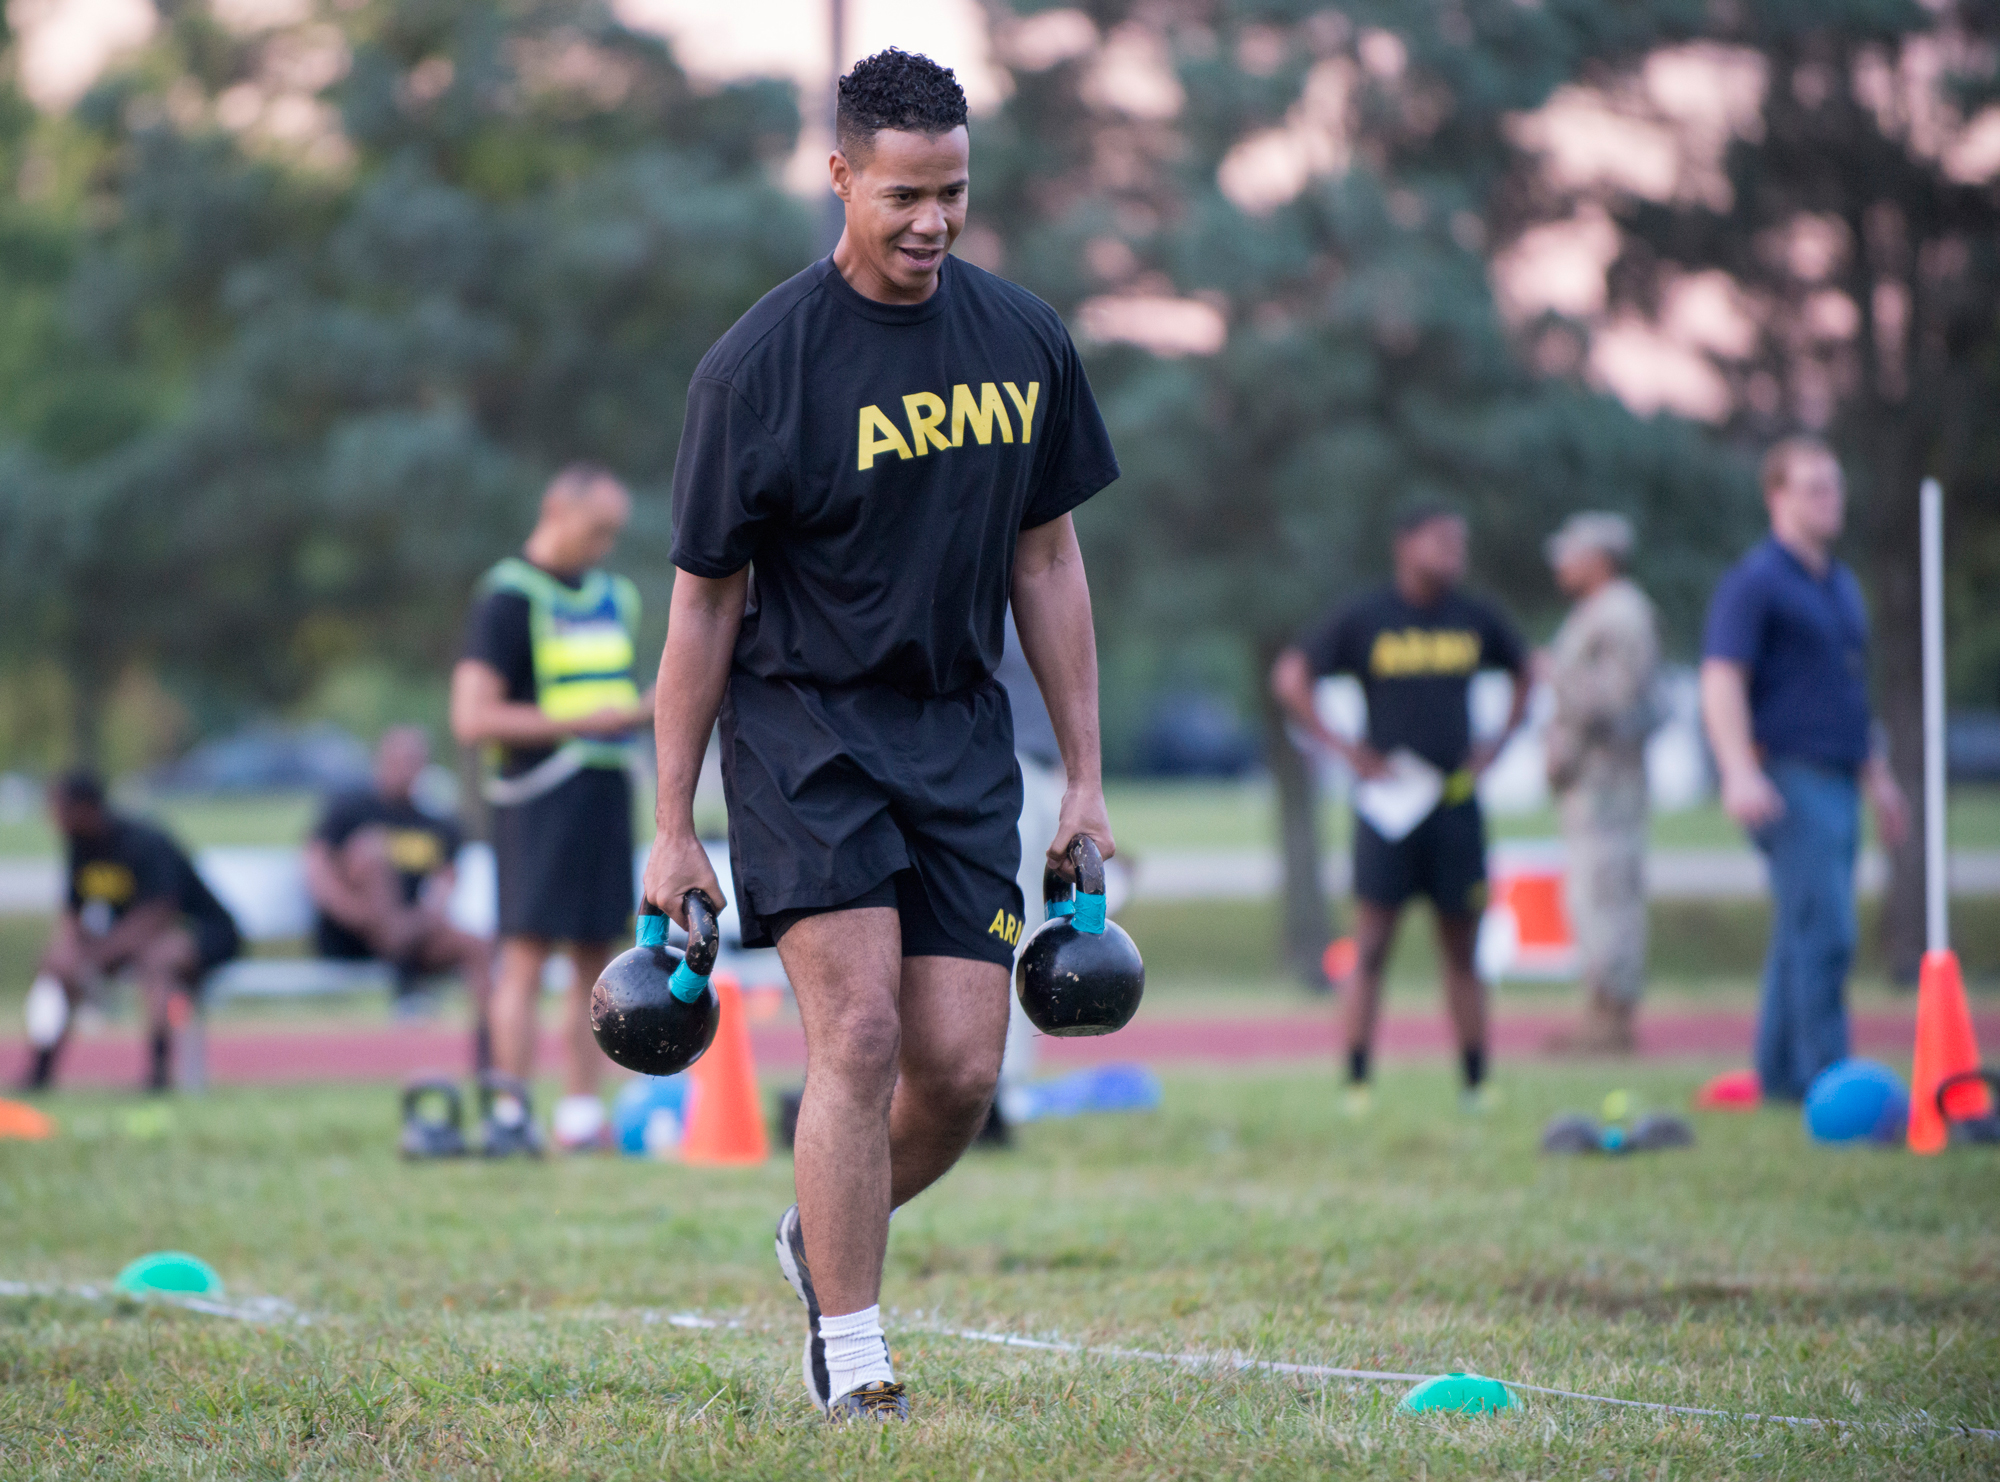 Combat Ready? New Army Test Aims to Better Assess Fitness